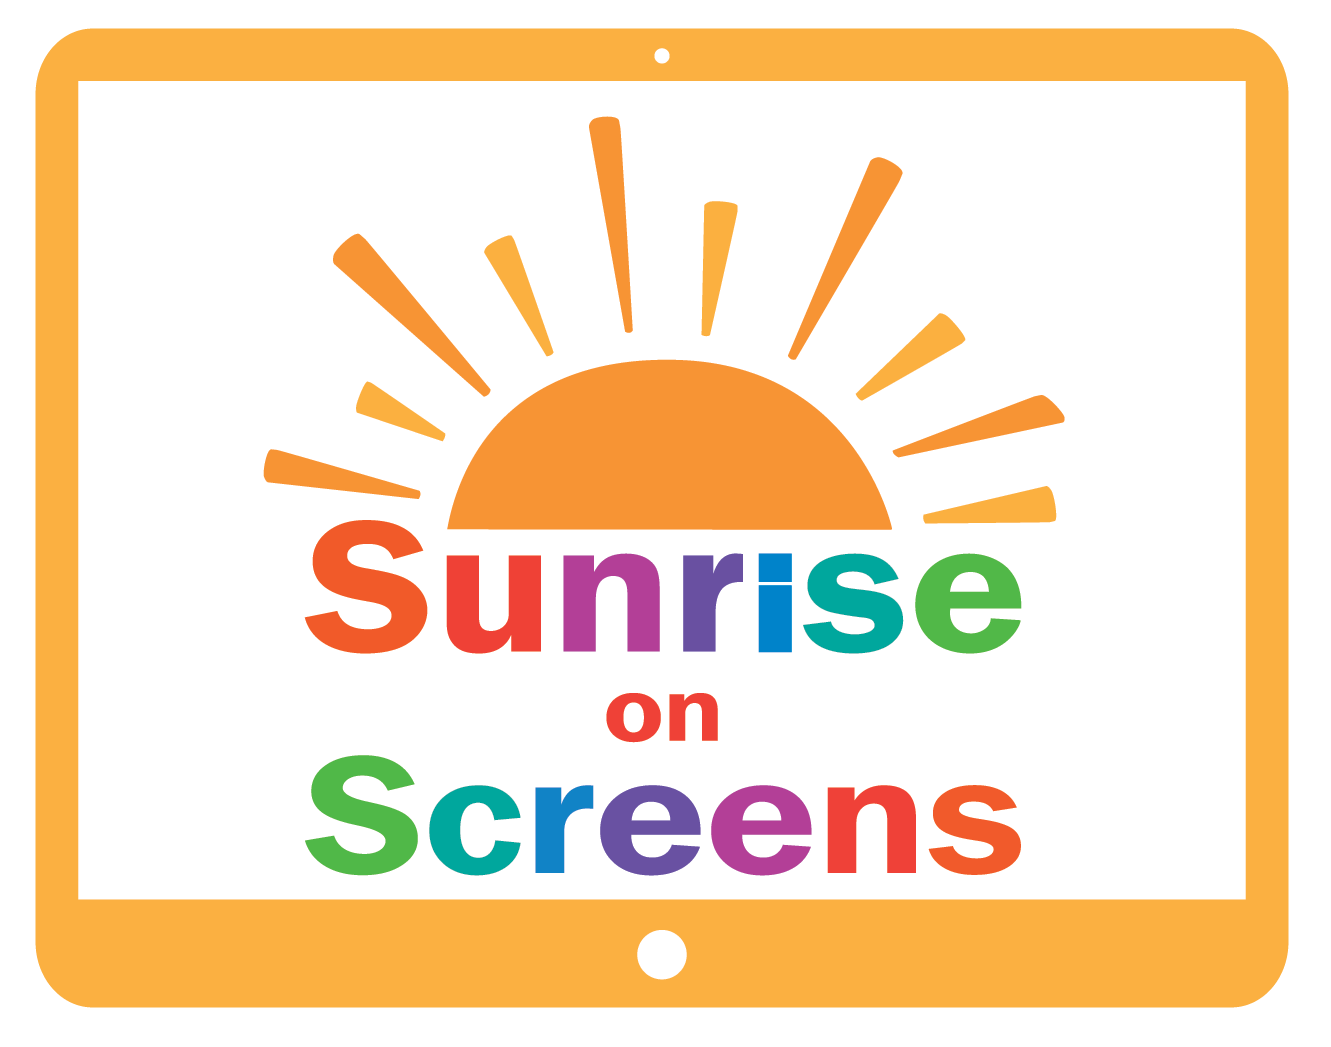 SunriseOnScreens_Logo.png